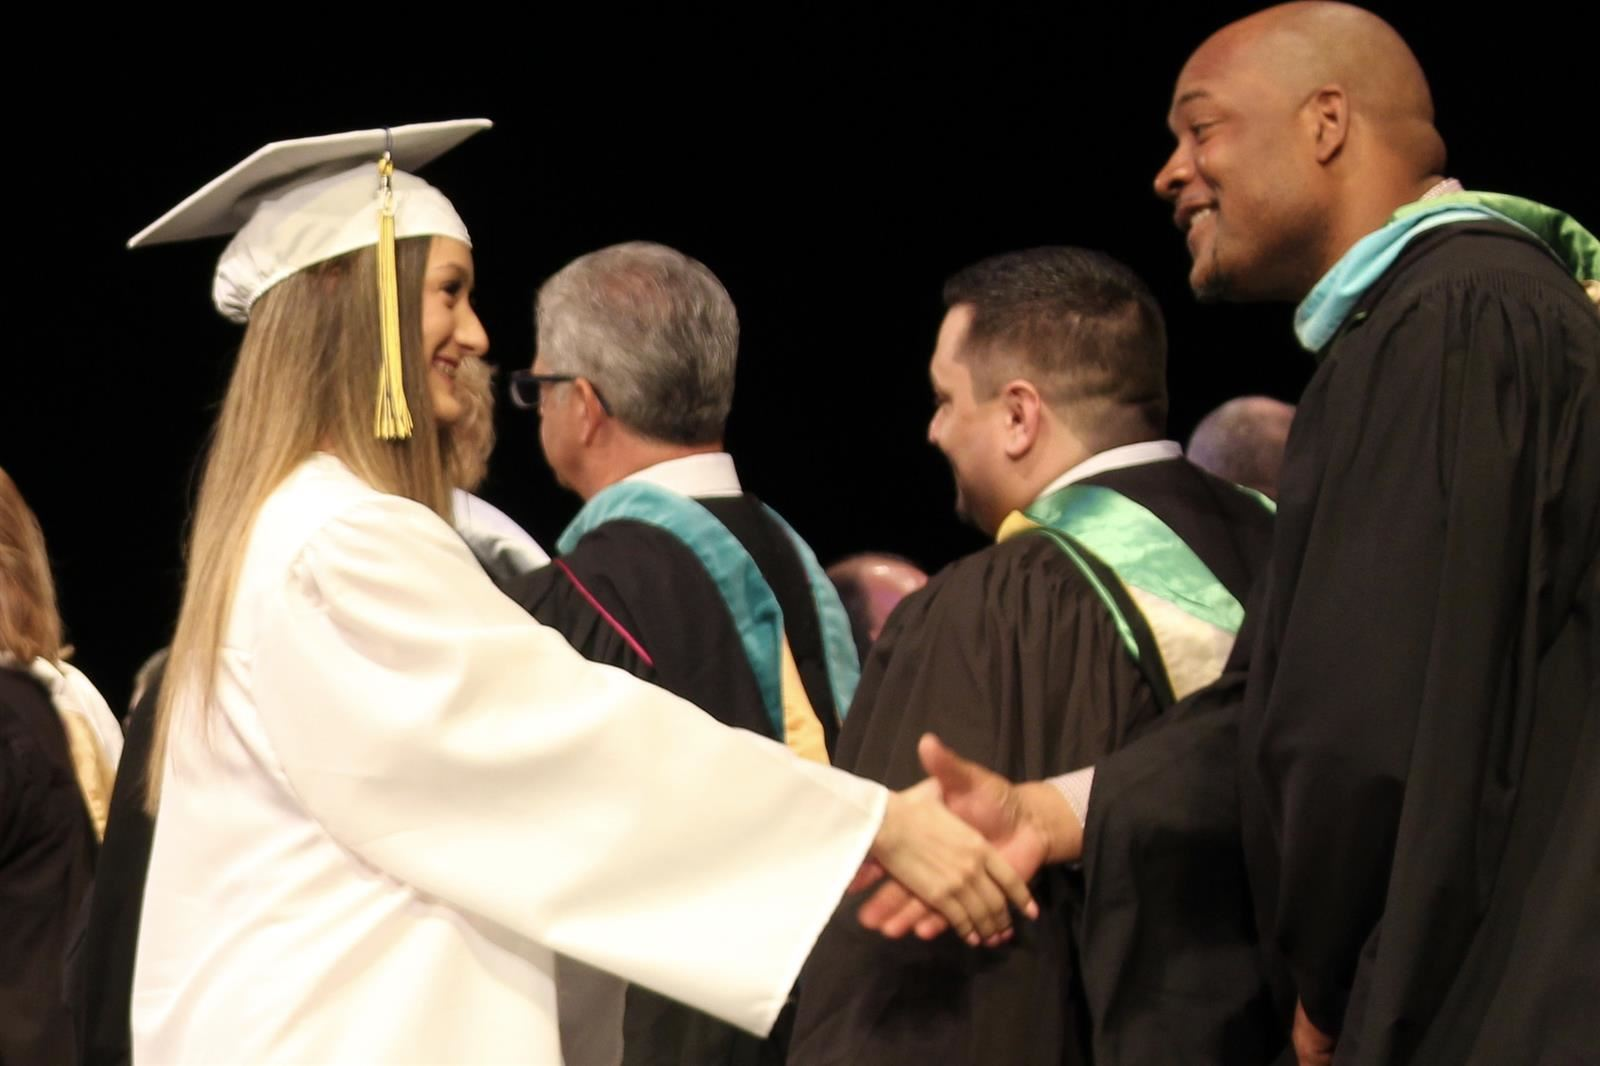 handshake at graduation